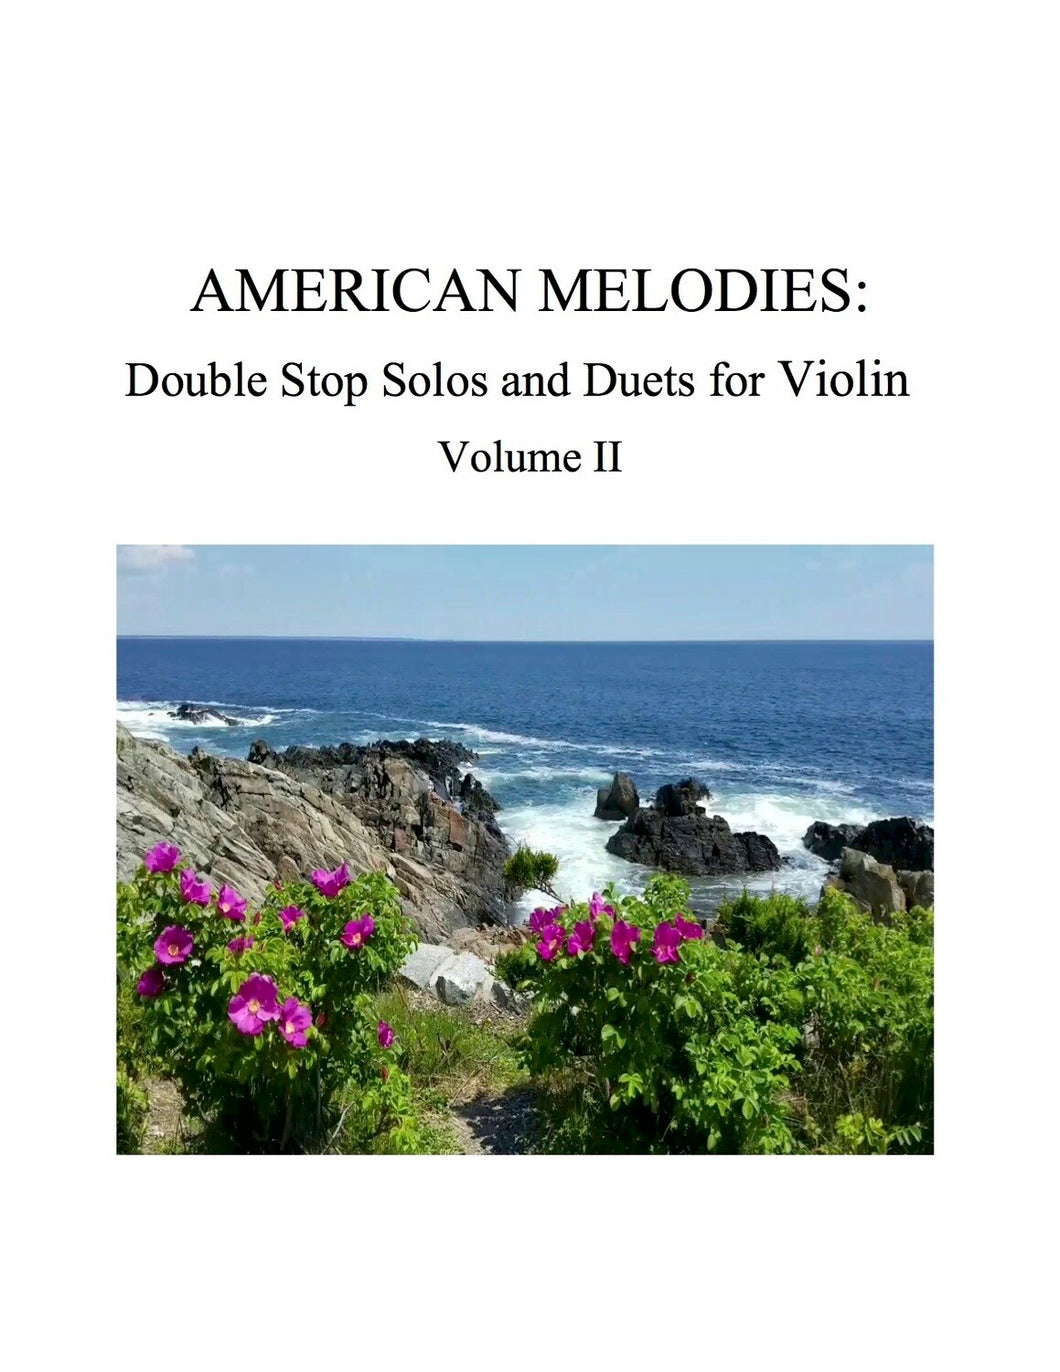 028 - American Melodies for Violin, Double Stop Solos and Duets, Volume Il